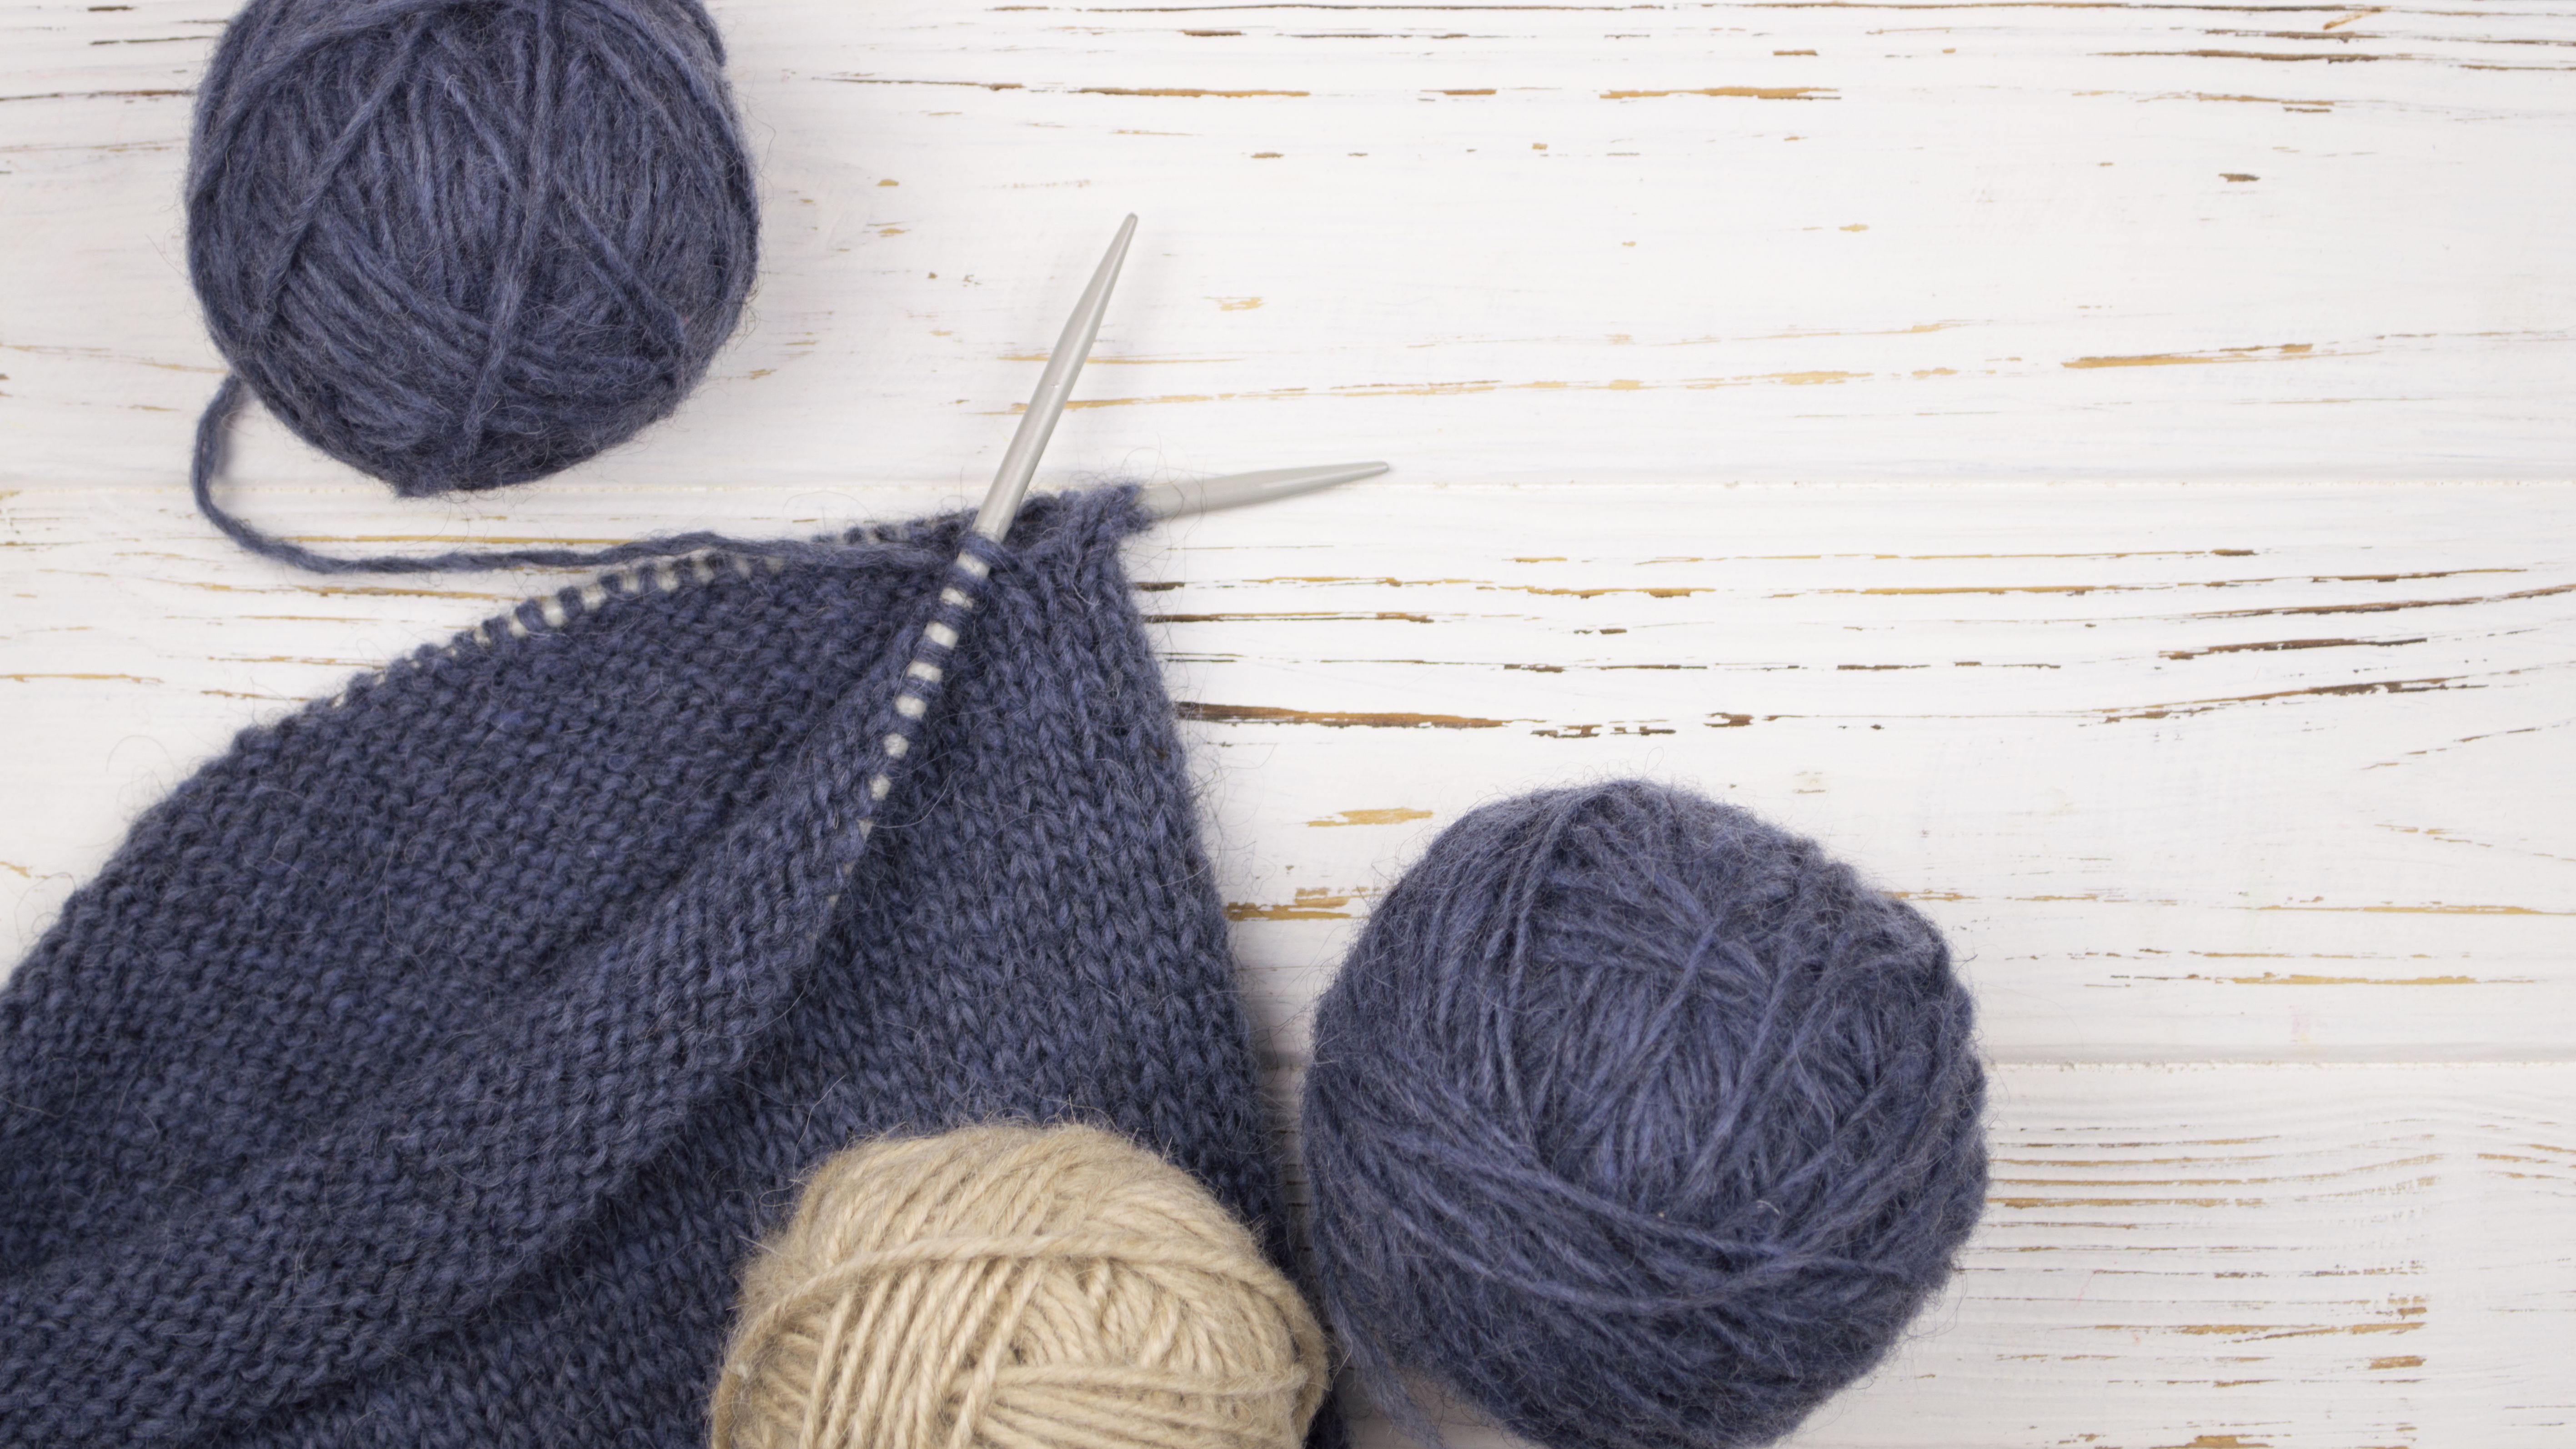 Knitting Socks On Circular Needles Pattern How To Join In The Round For Circular Knitting